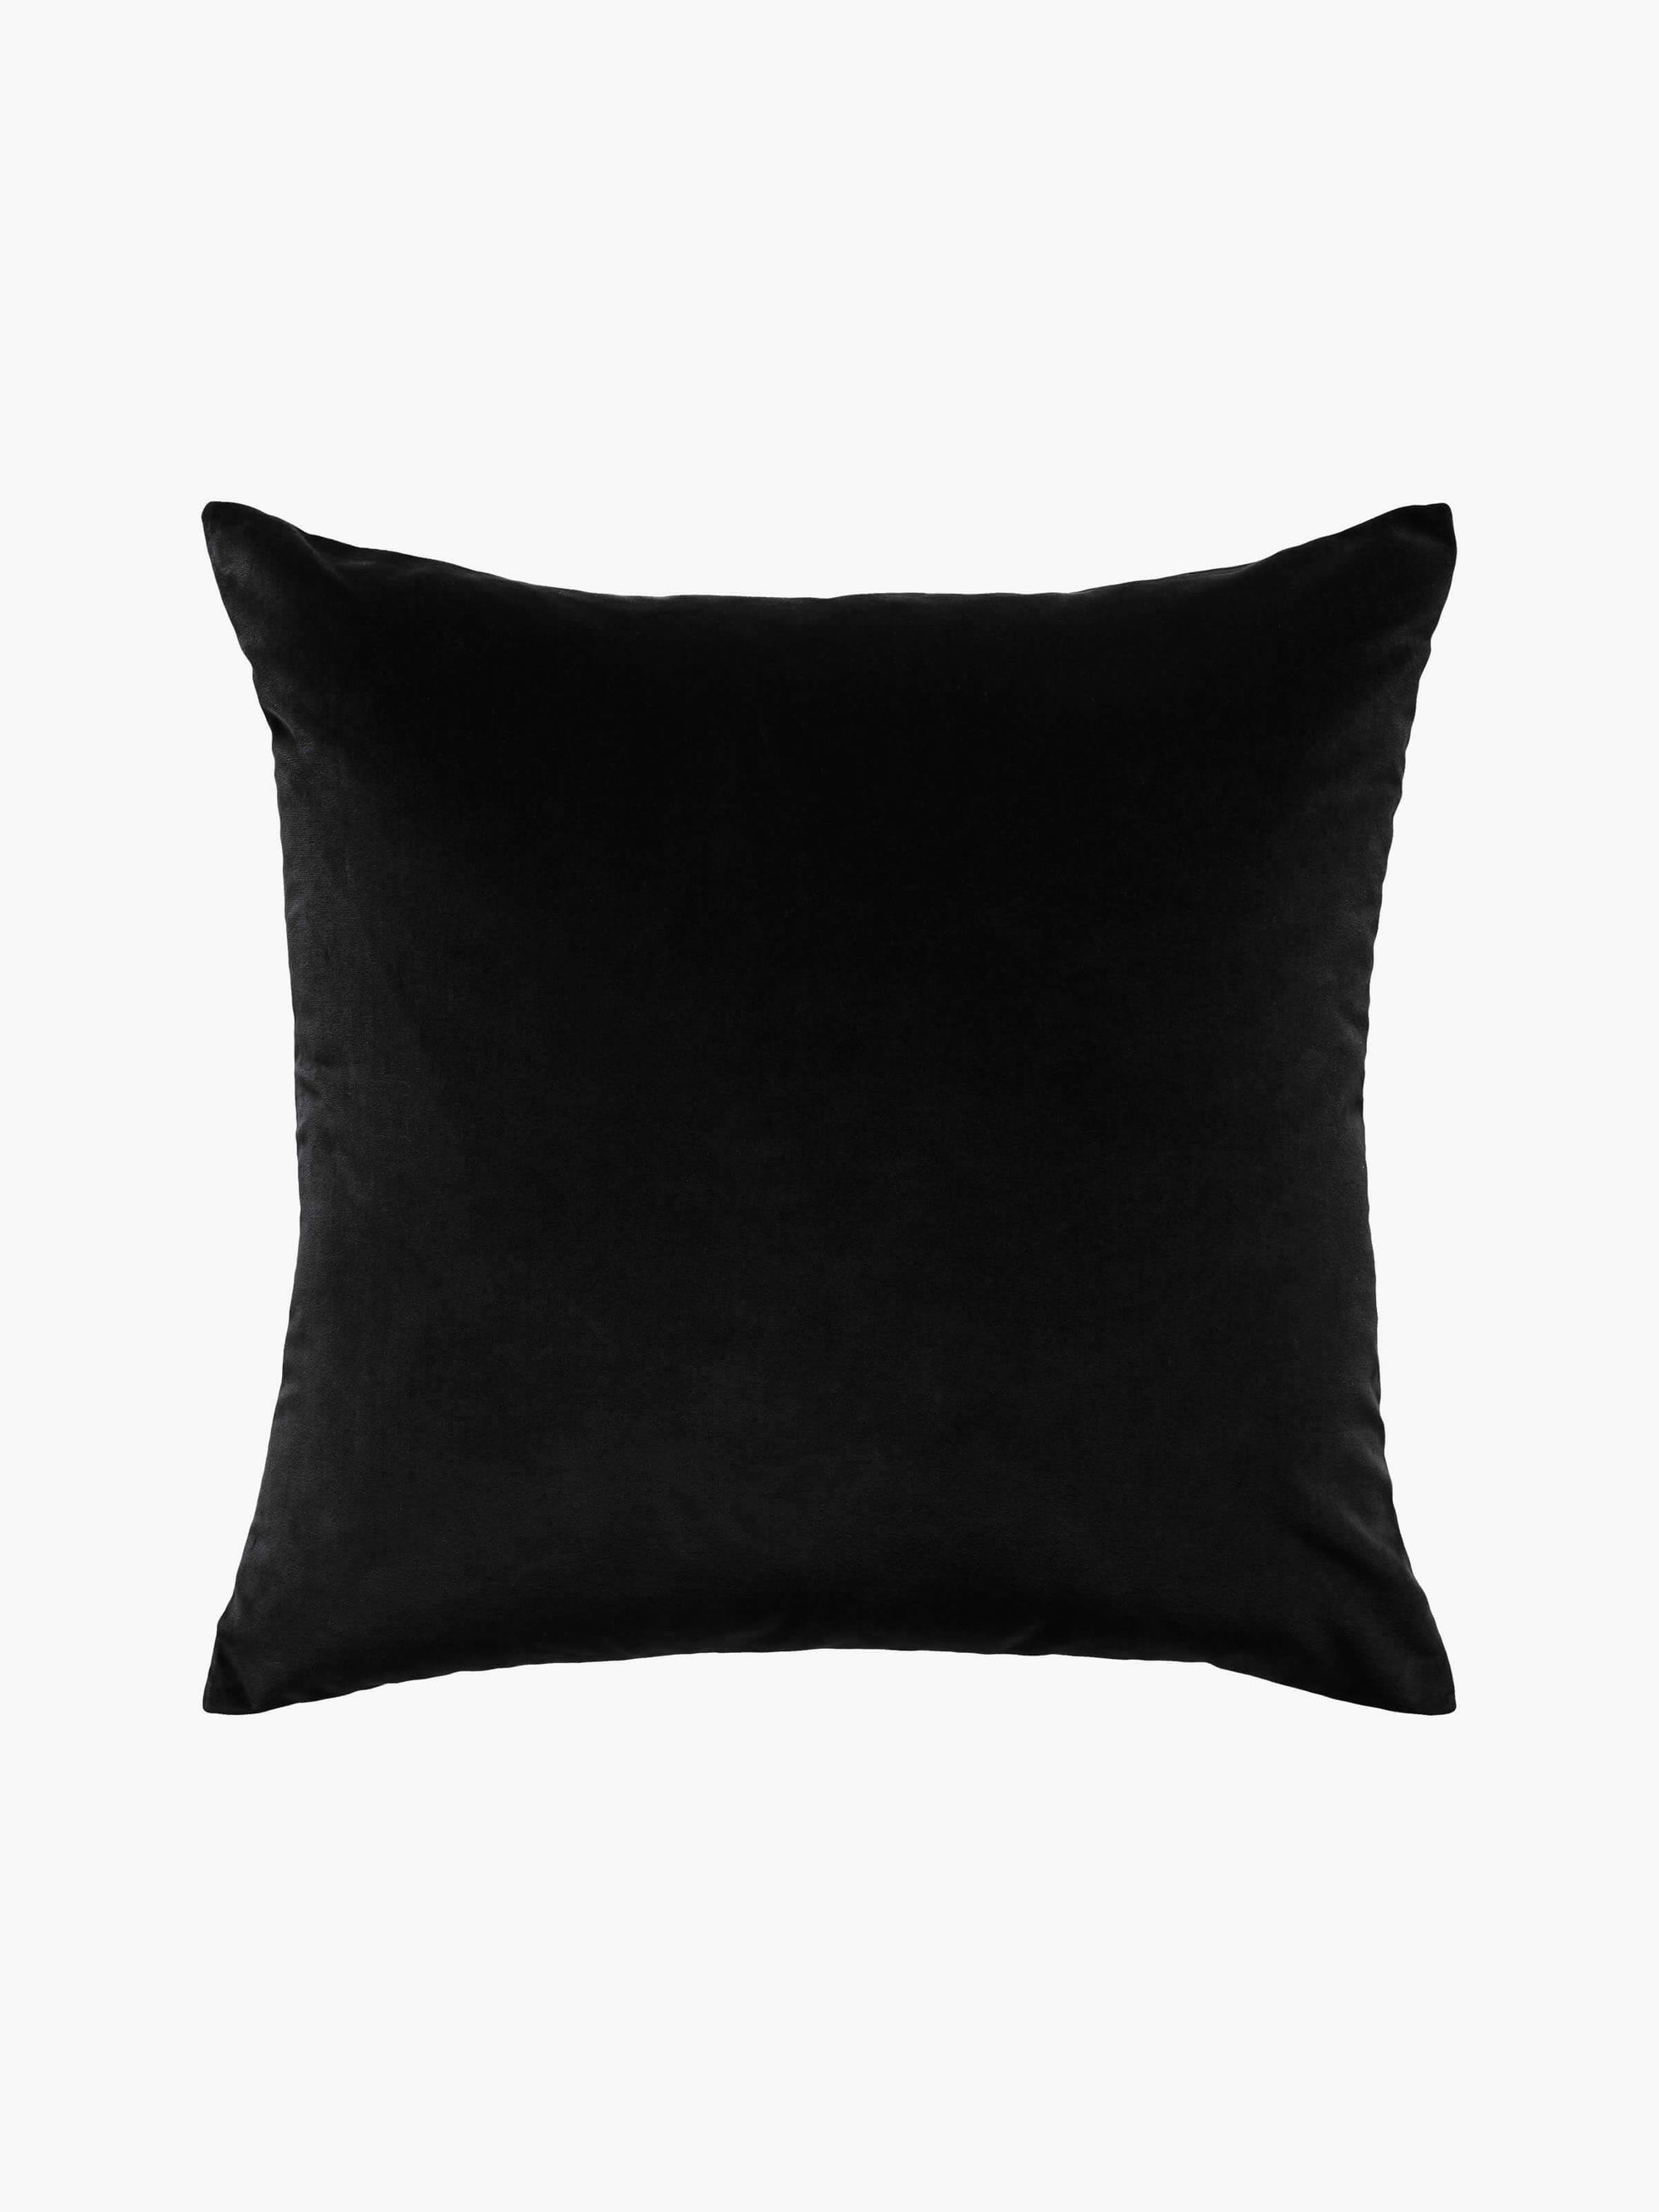 Etro Black Cushion Cushion 2020 Etro Cushion